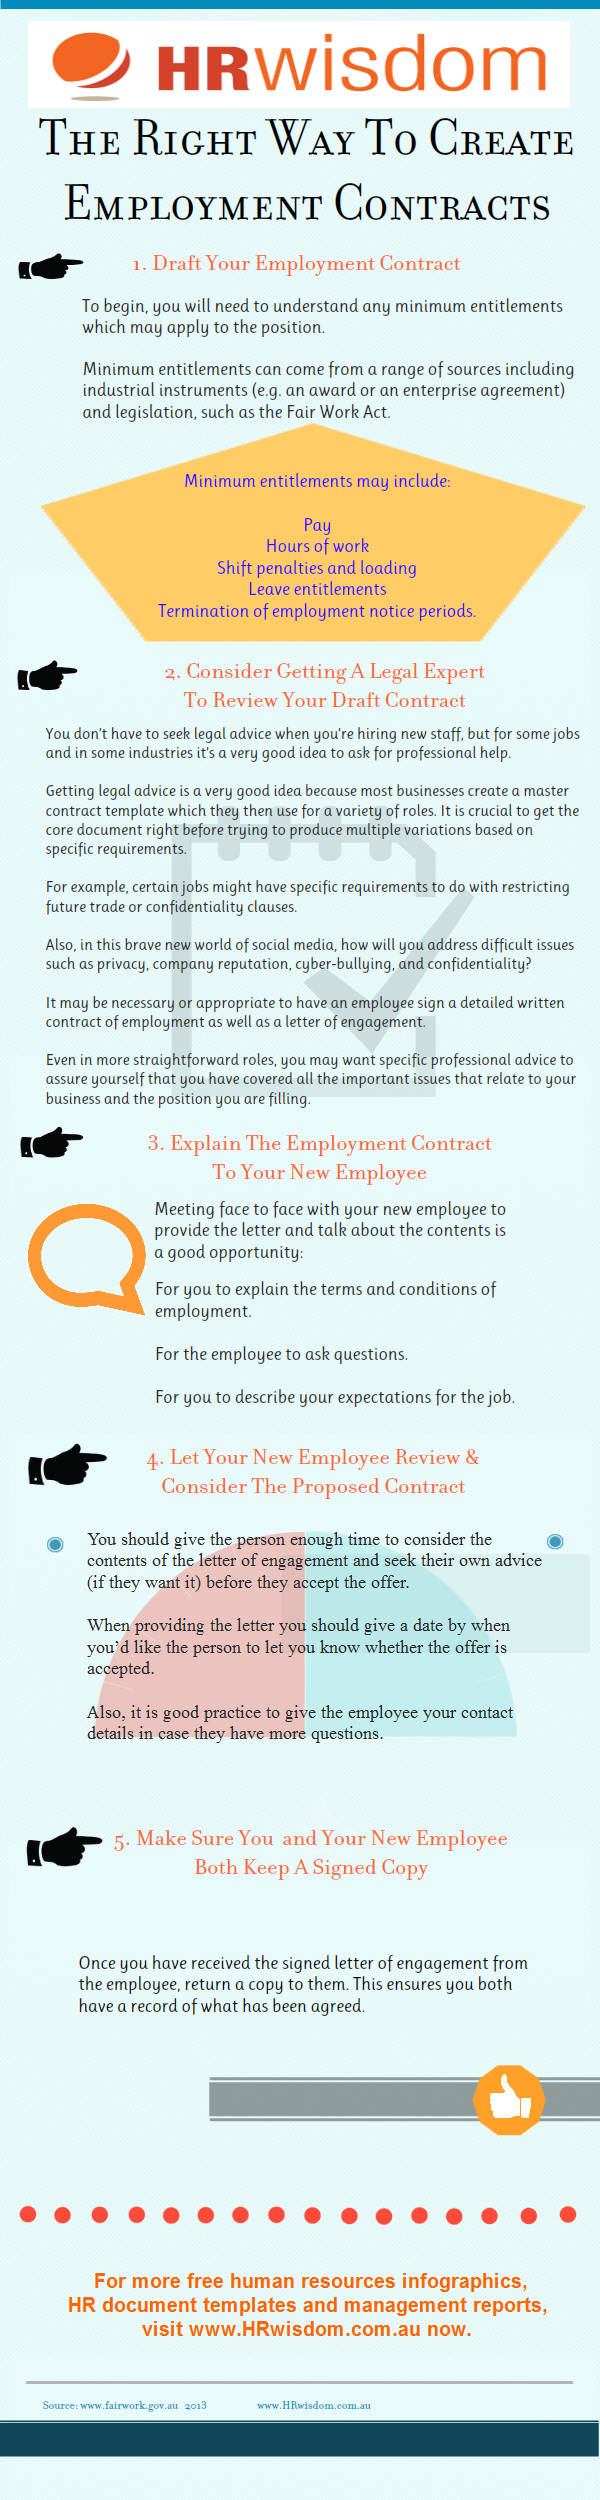 HR Infographic - How To Create Employment Contracts